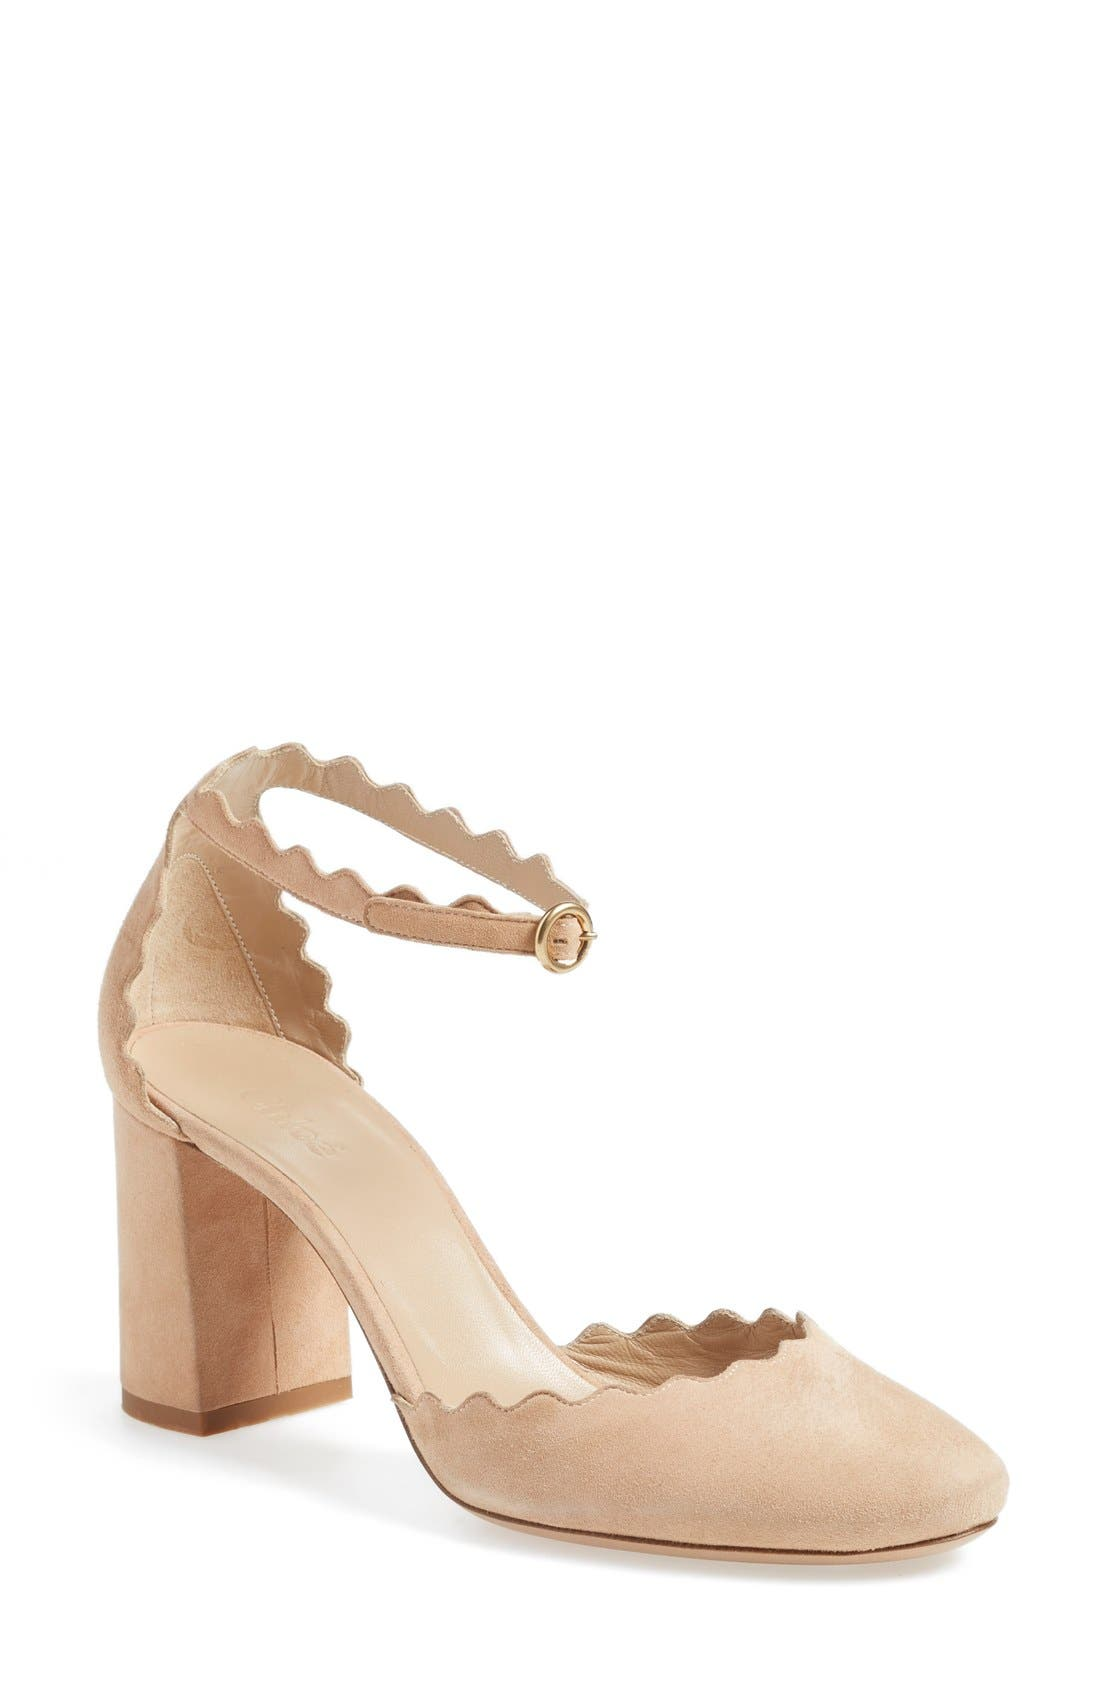 Main Image - Chloé Scalloped Ankle Strap d'Orsay Pump (Women)